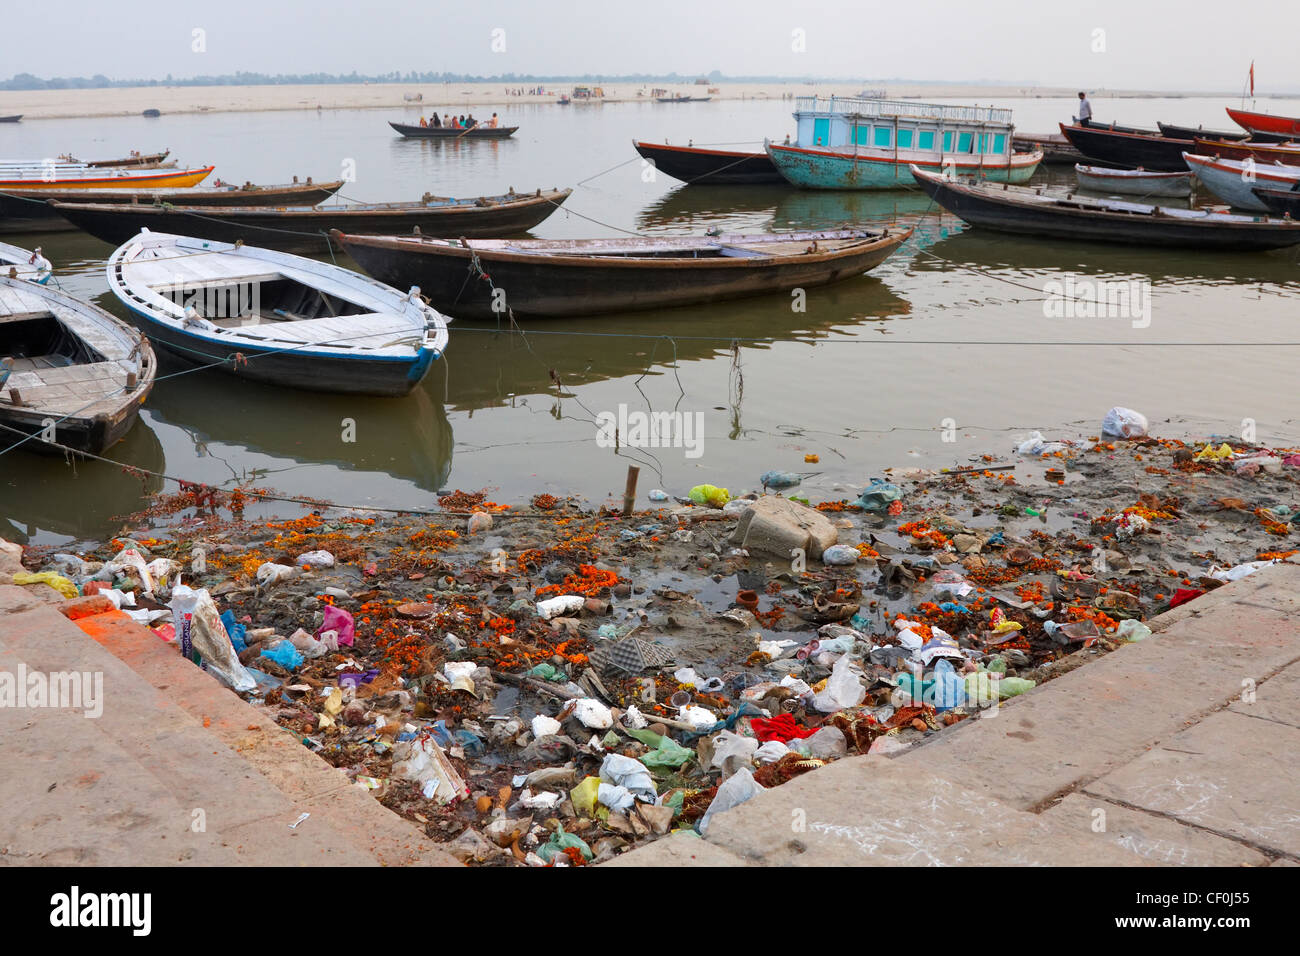 Polluted Ganges River, Varanasi, India - Stock Image